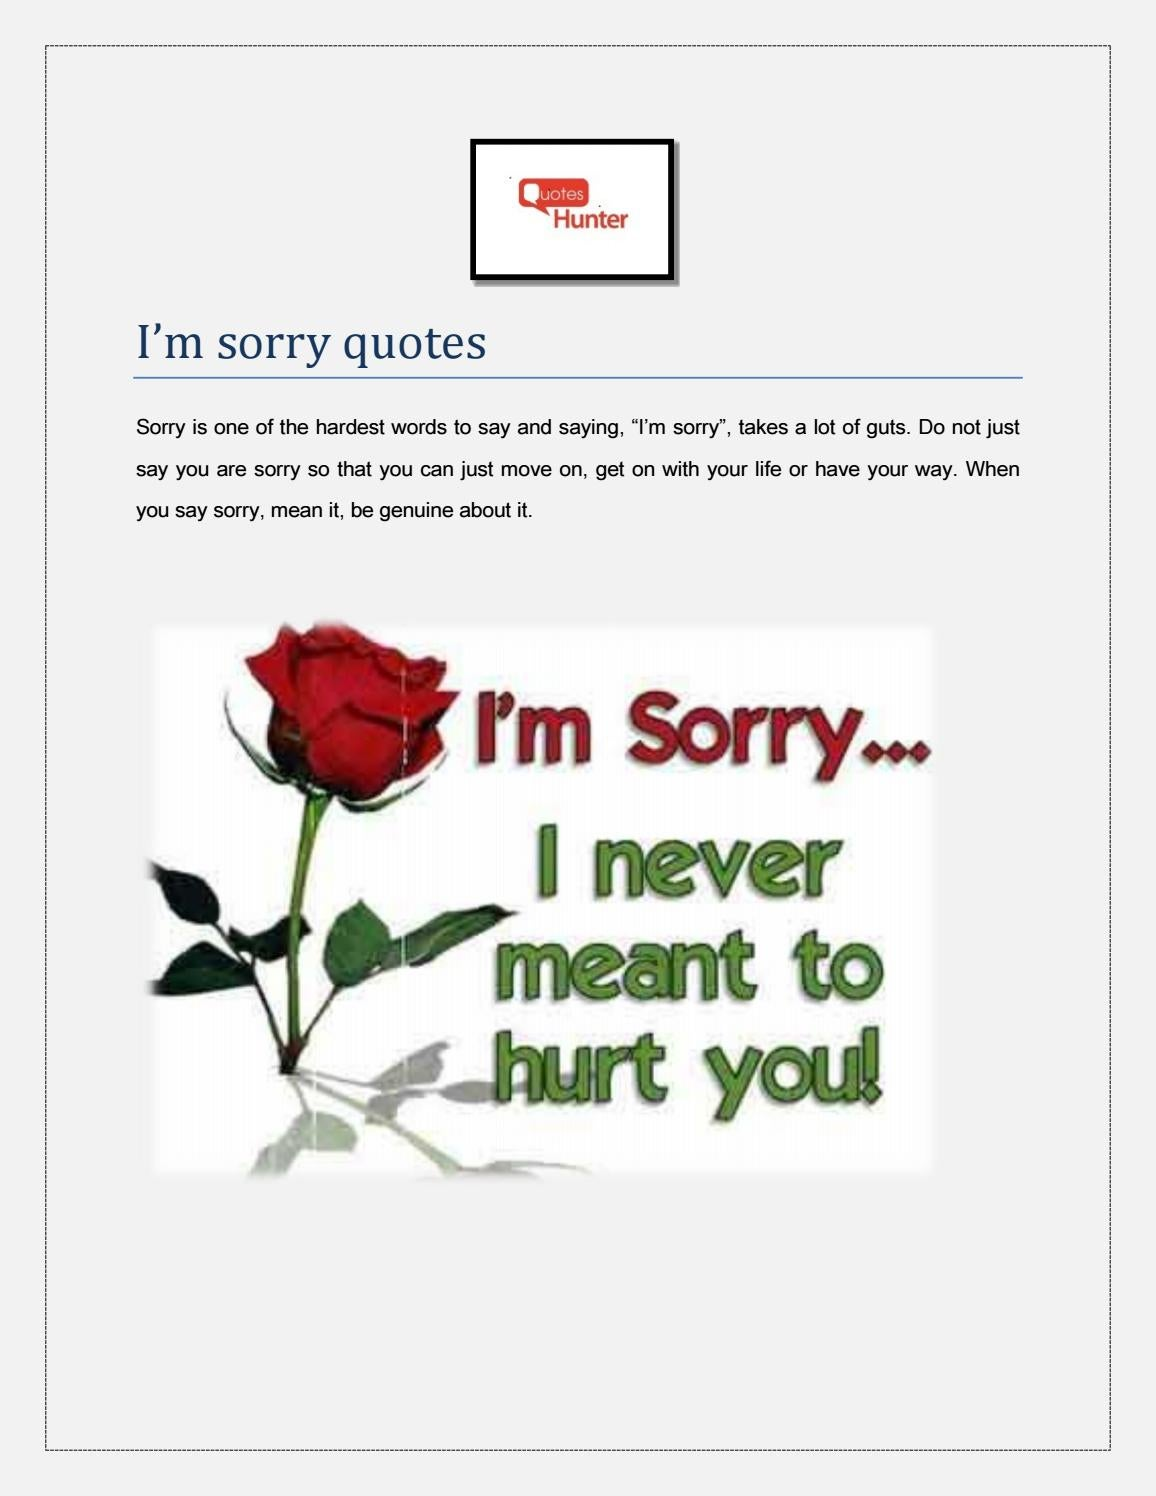 I'm Sorry Quotes By Quoteshunter